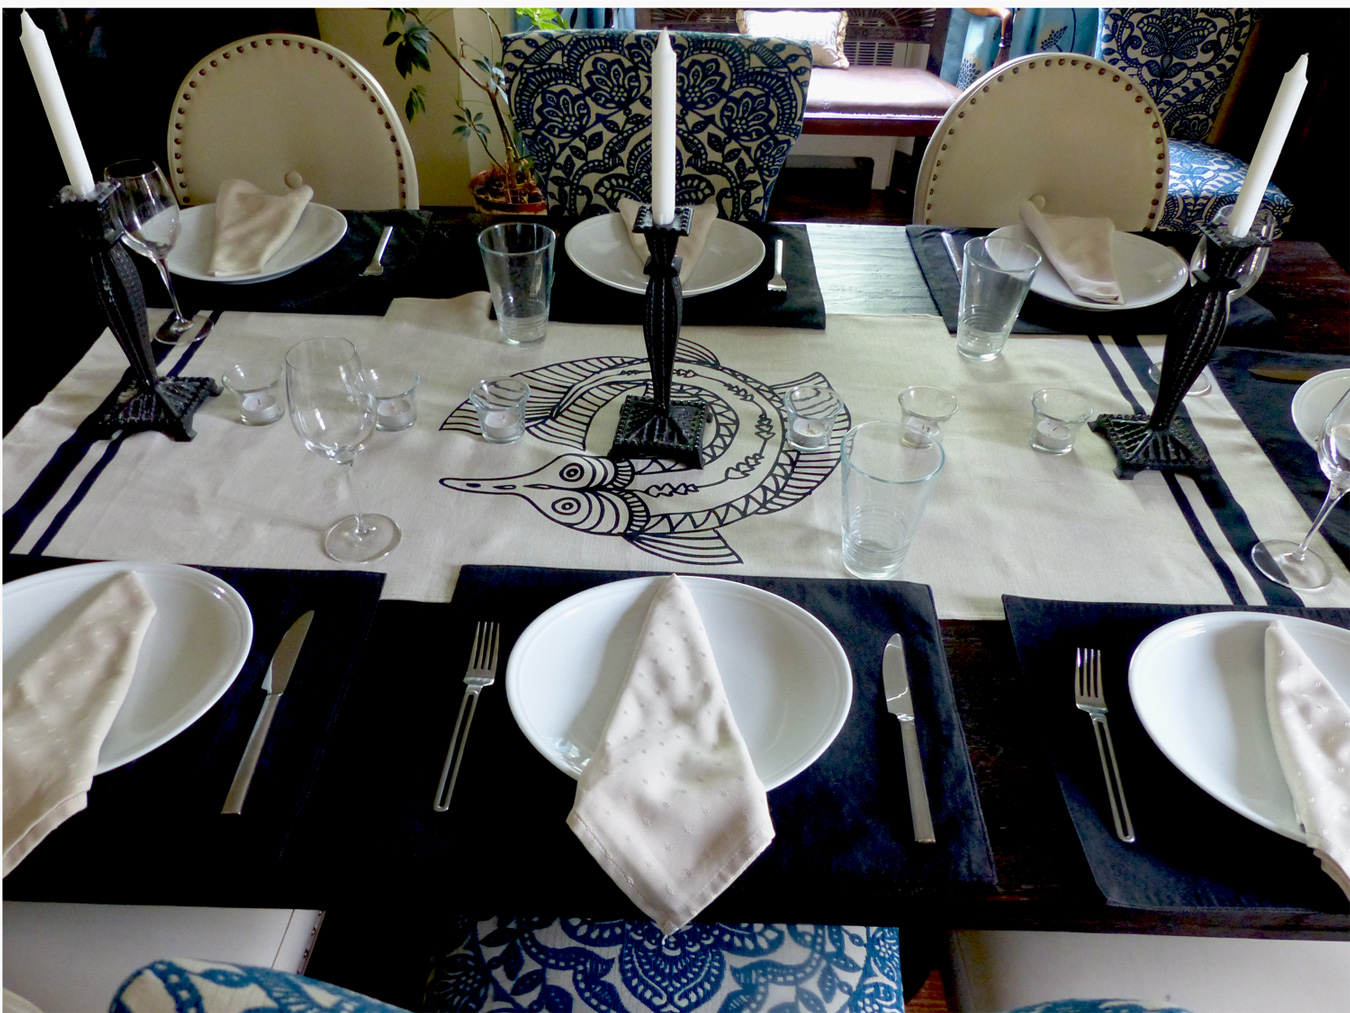 Napkins with a simple triangle form gently placed in the middle of the plate. No napkin holders needed to create an elegant look.